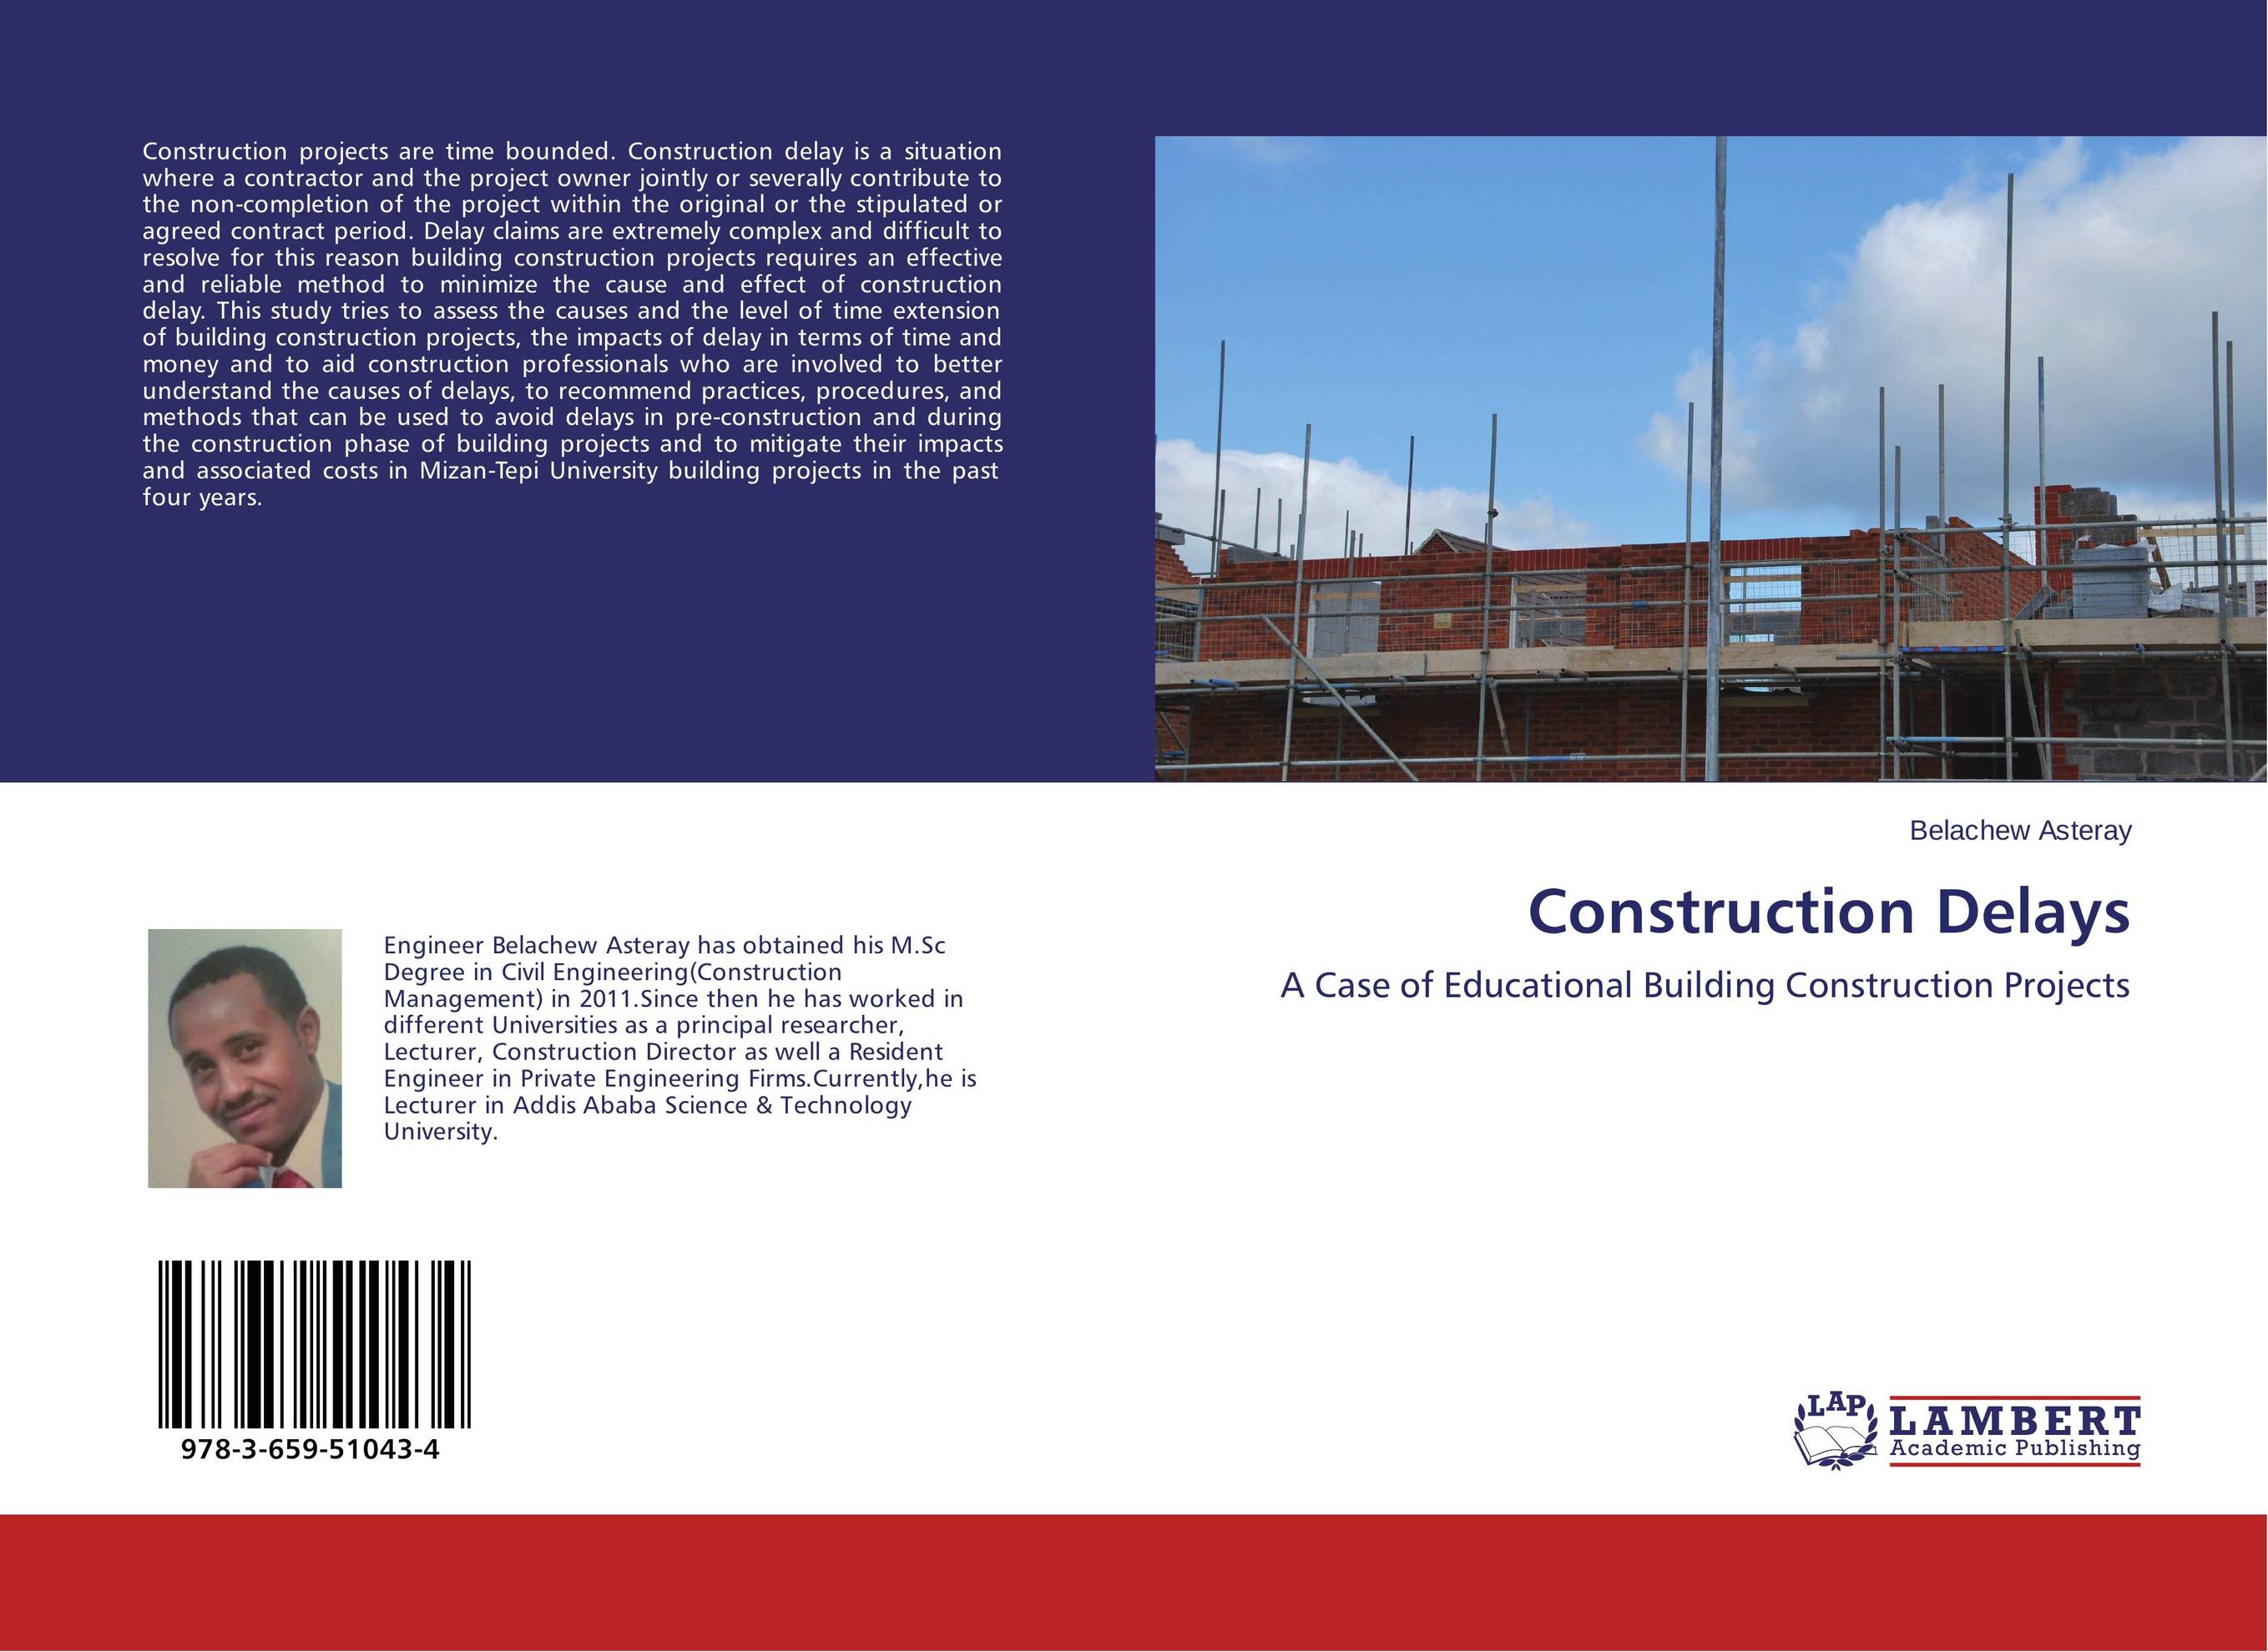 Construction Delays case studies in troubled construction projects